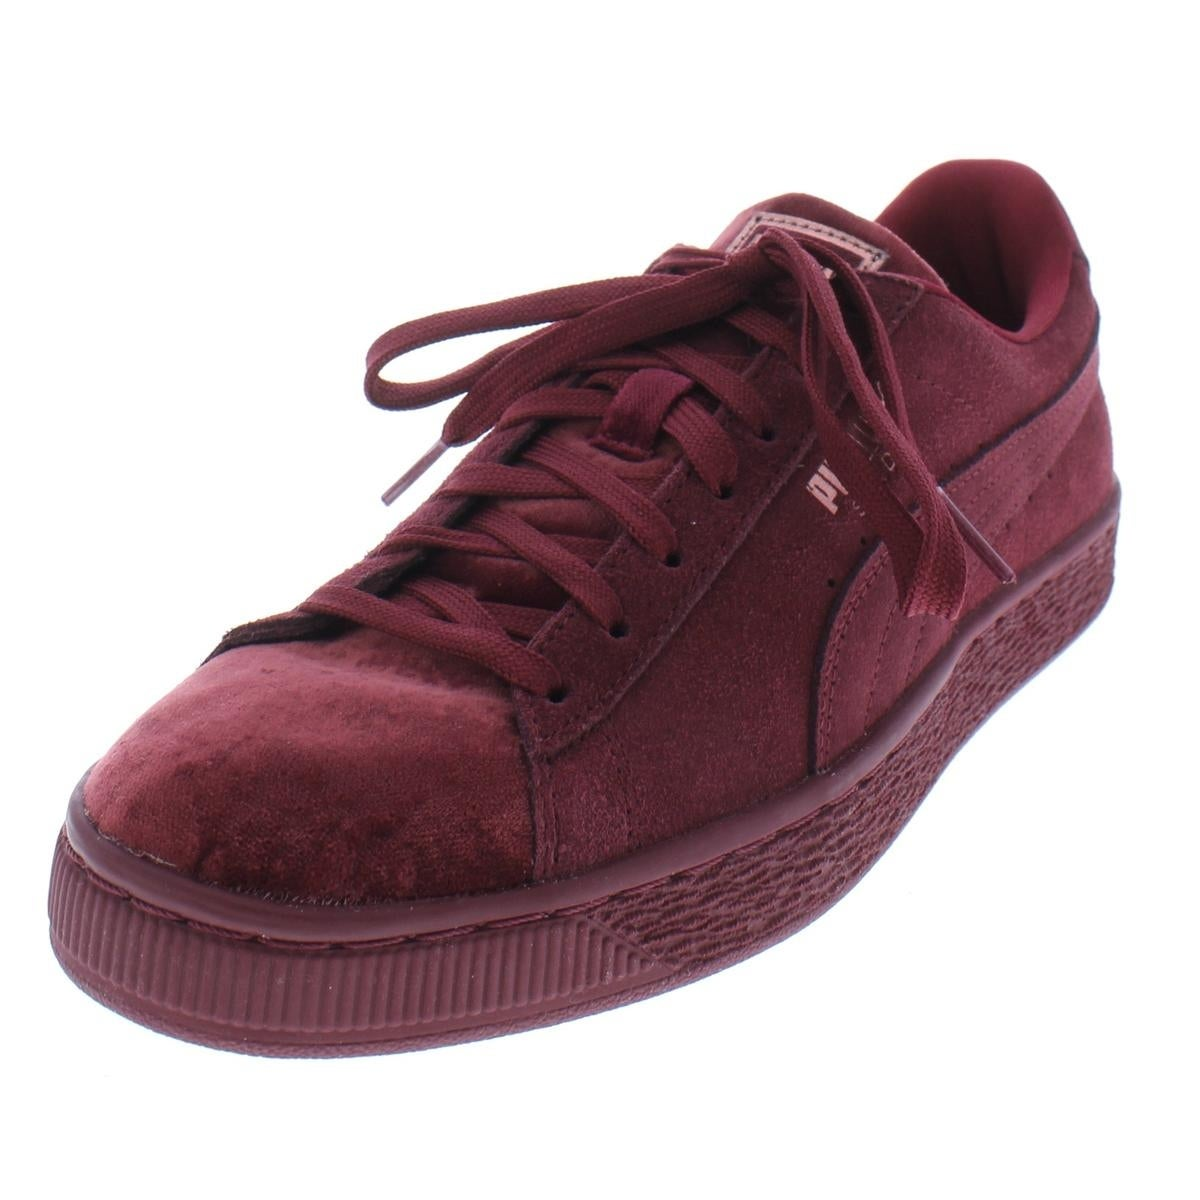 e26dc0d5e371 Shop Puma Womens Classic Casual Shoes Suede Velvet - Free Shipping On  Orders Over  45 - Overstock.com - 24087895